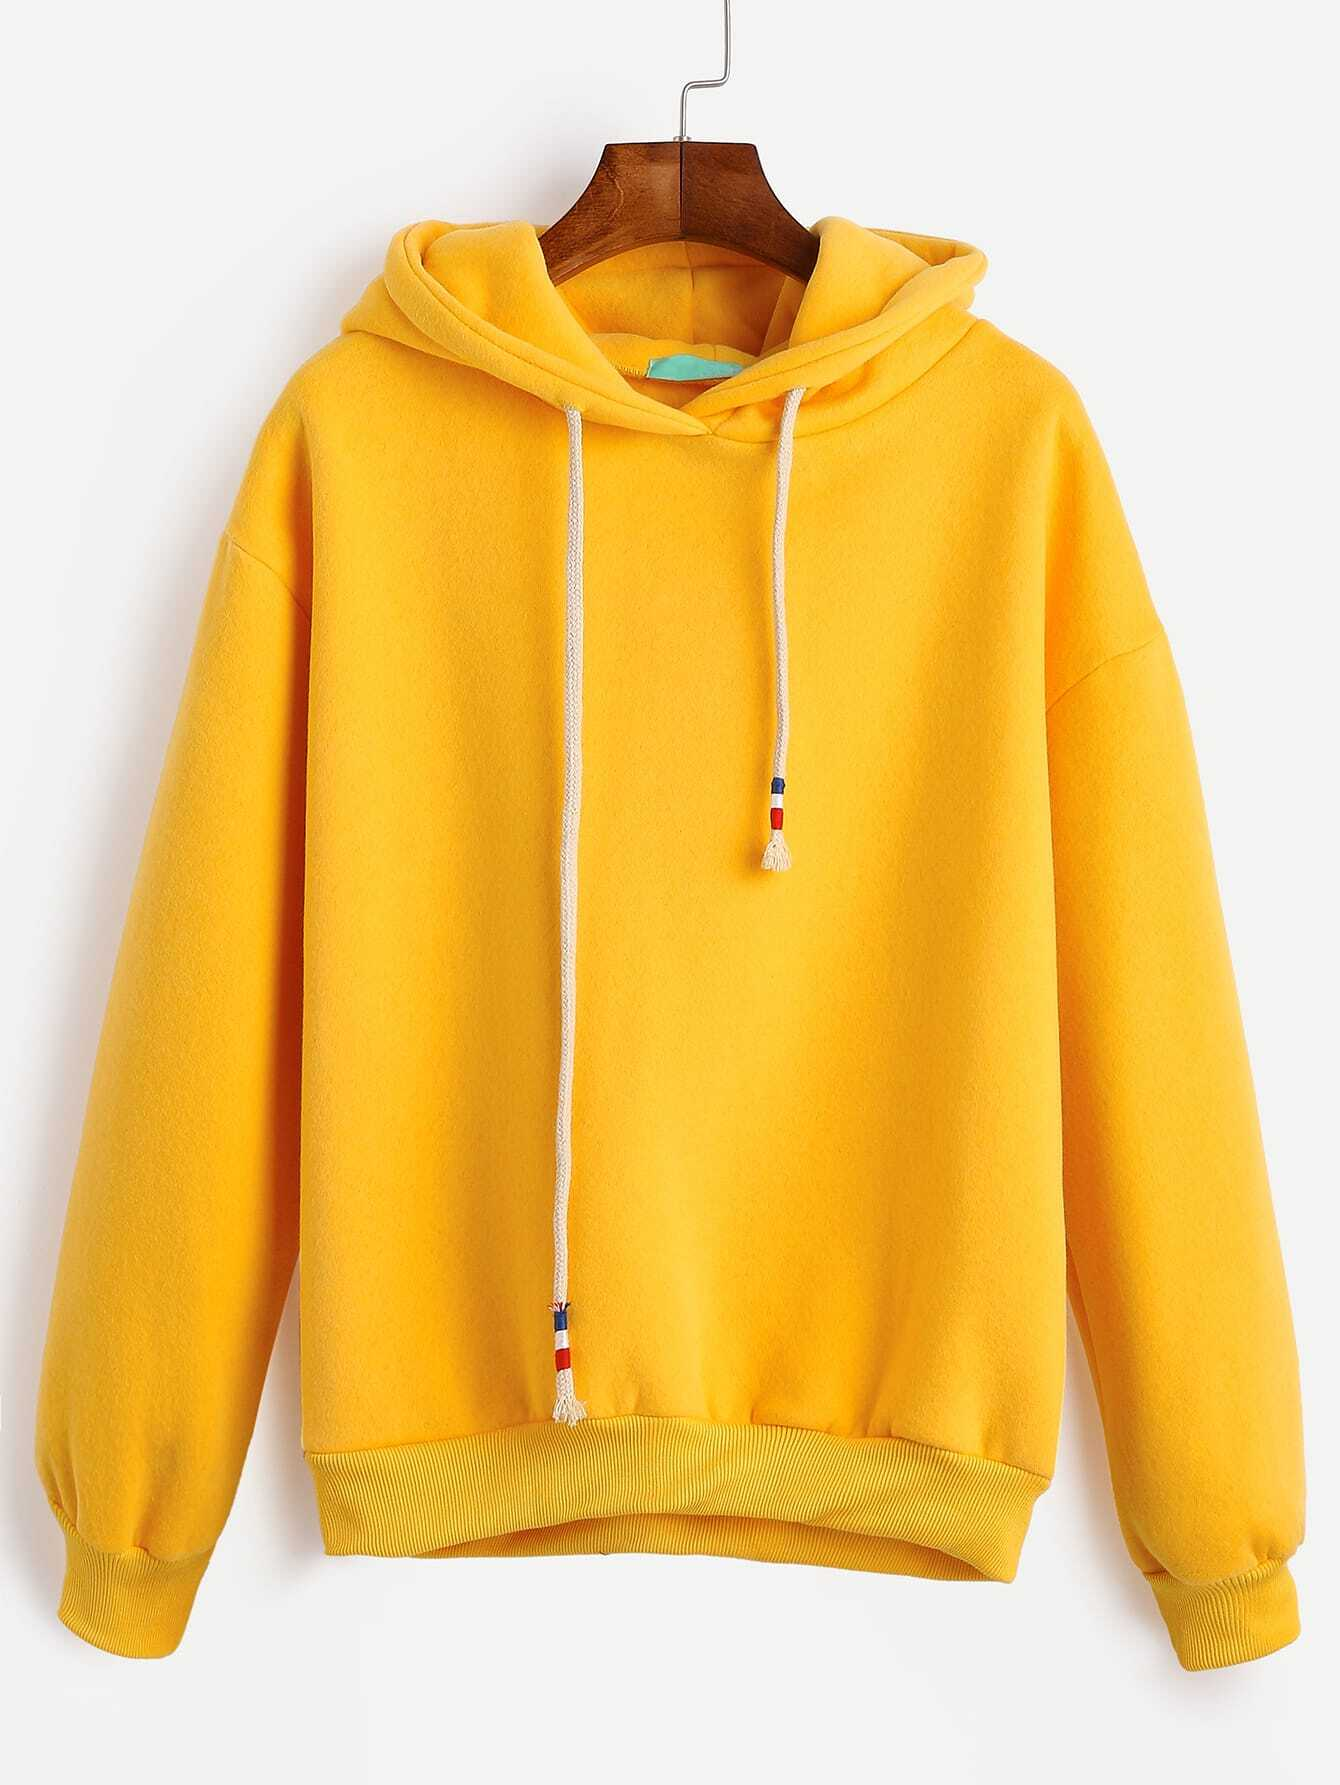 Find great deals on eBay for Yellow Hoodie in Sweats and Hoodies for Women. Shop with confidence.